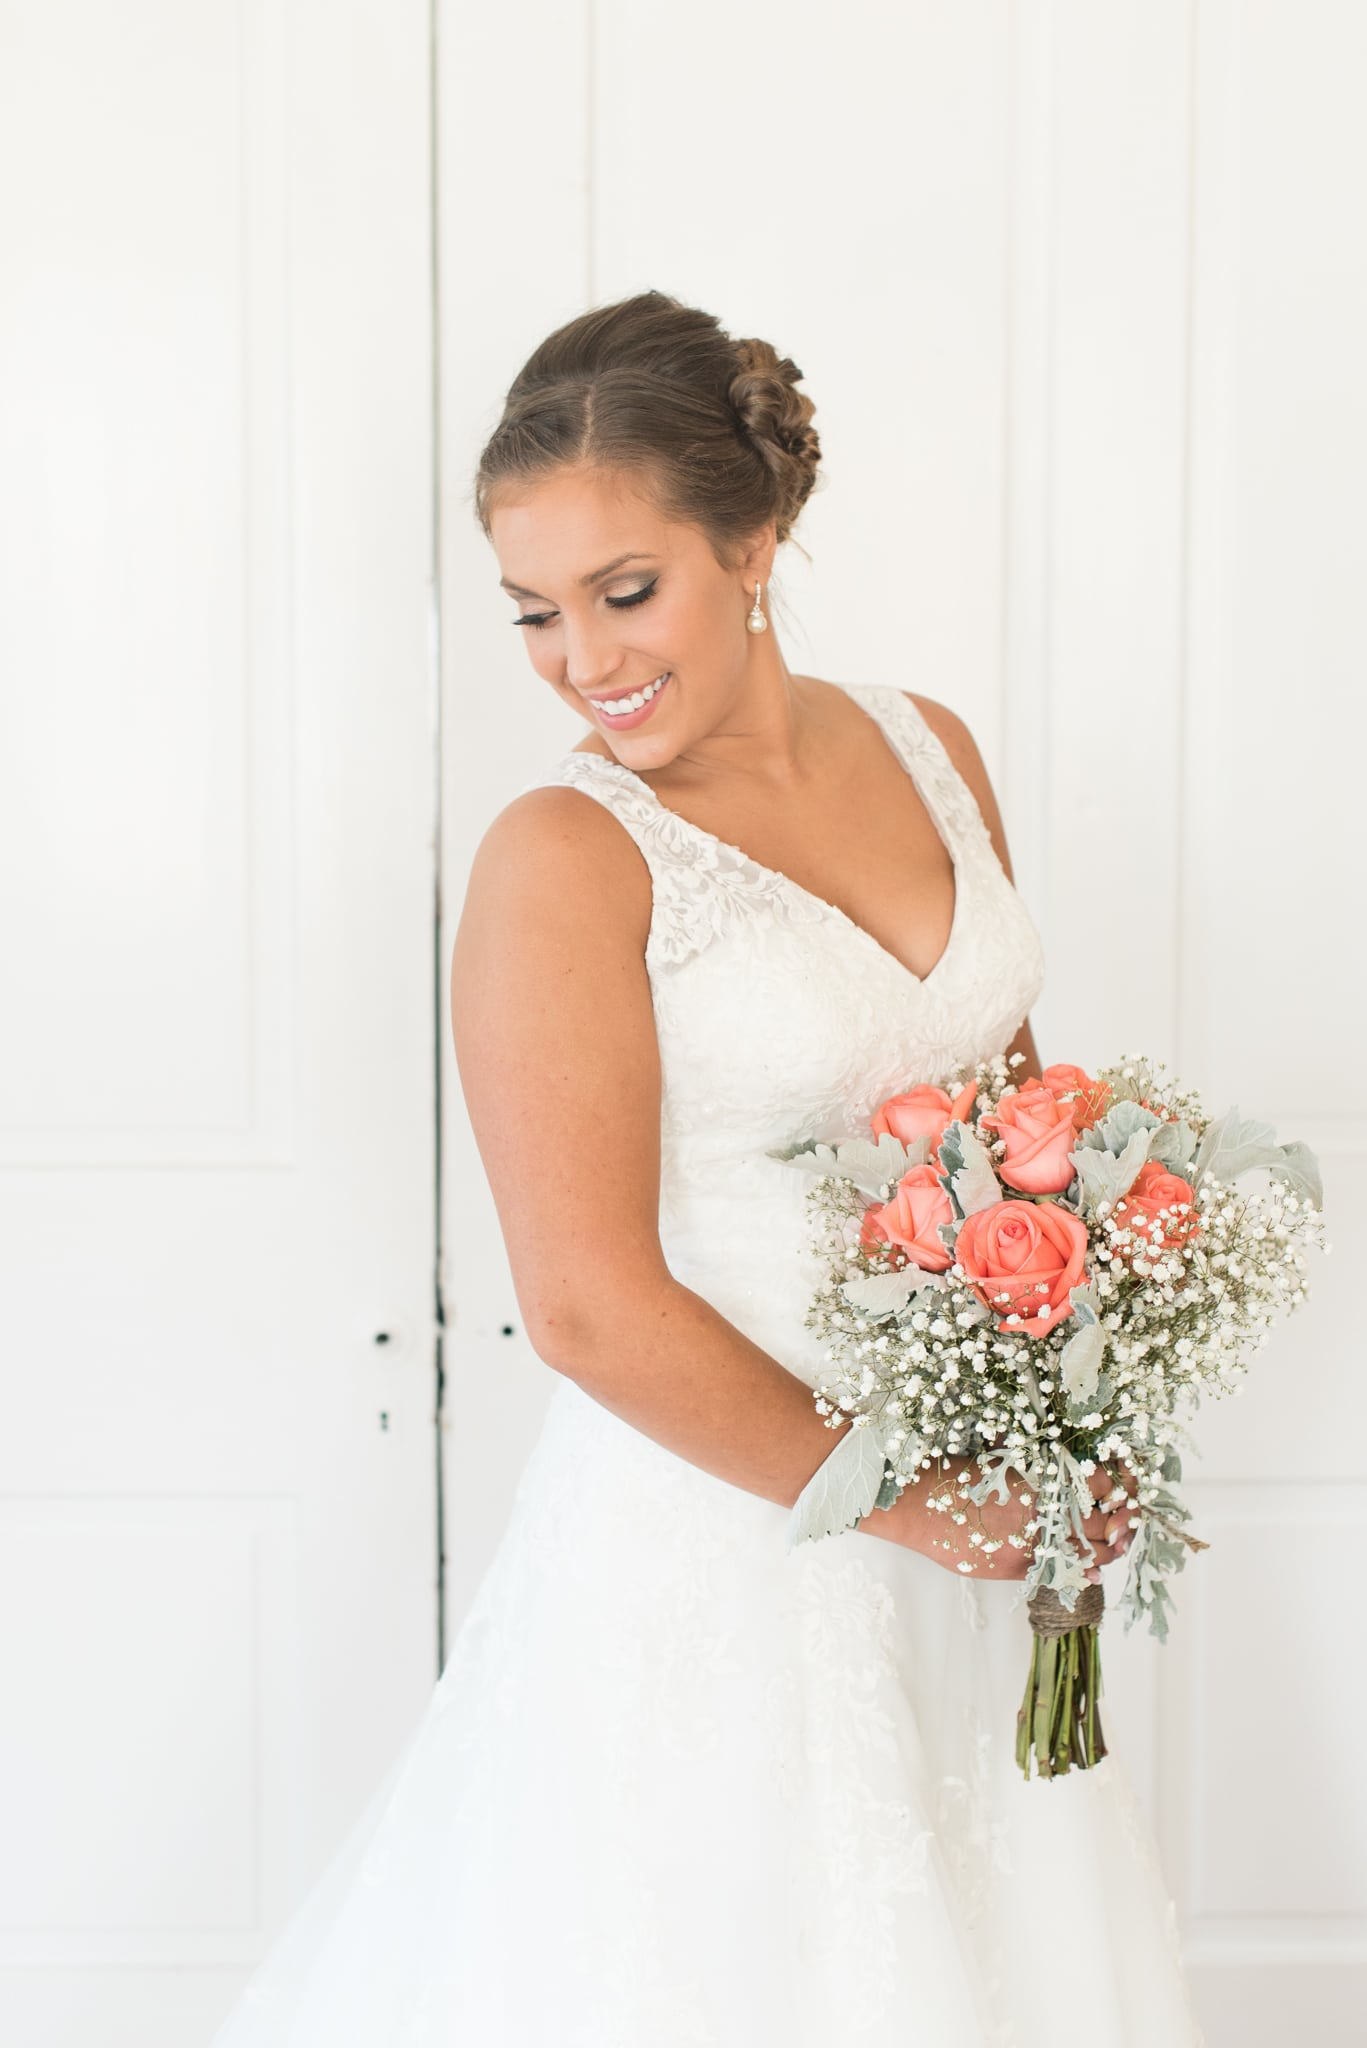 Lafayette, Indiana Wedding Photographer | Victoria Rayburn Photography | Indiana Wedding Photographer | Wedding Photographer Near Me | Wedding Photographer in Lafayette, Indiana